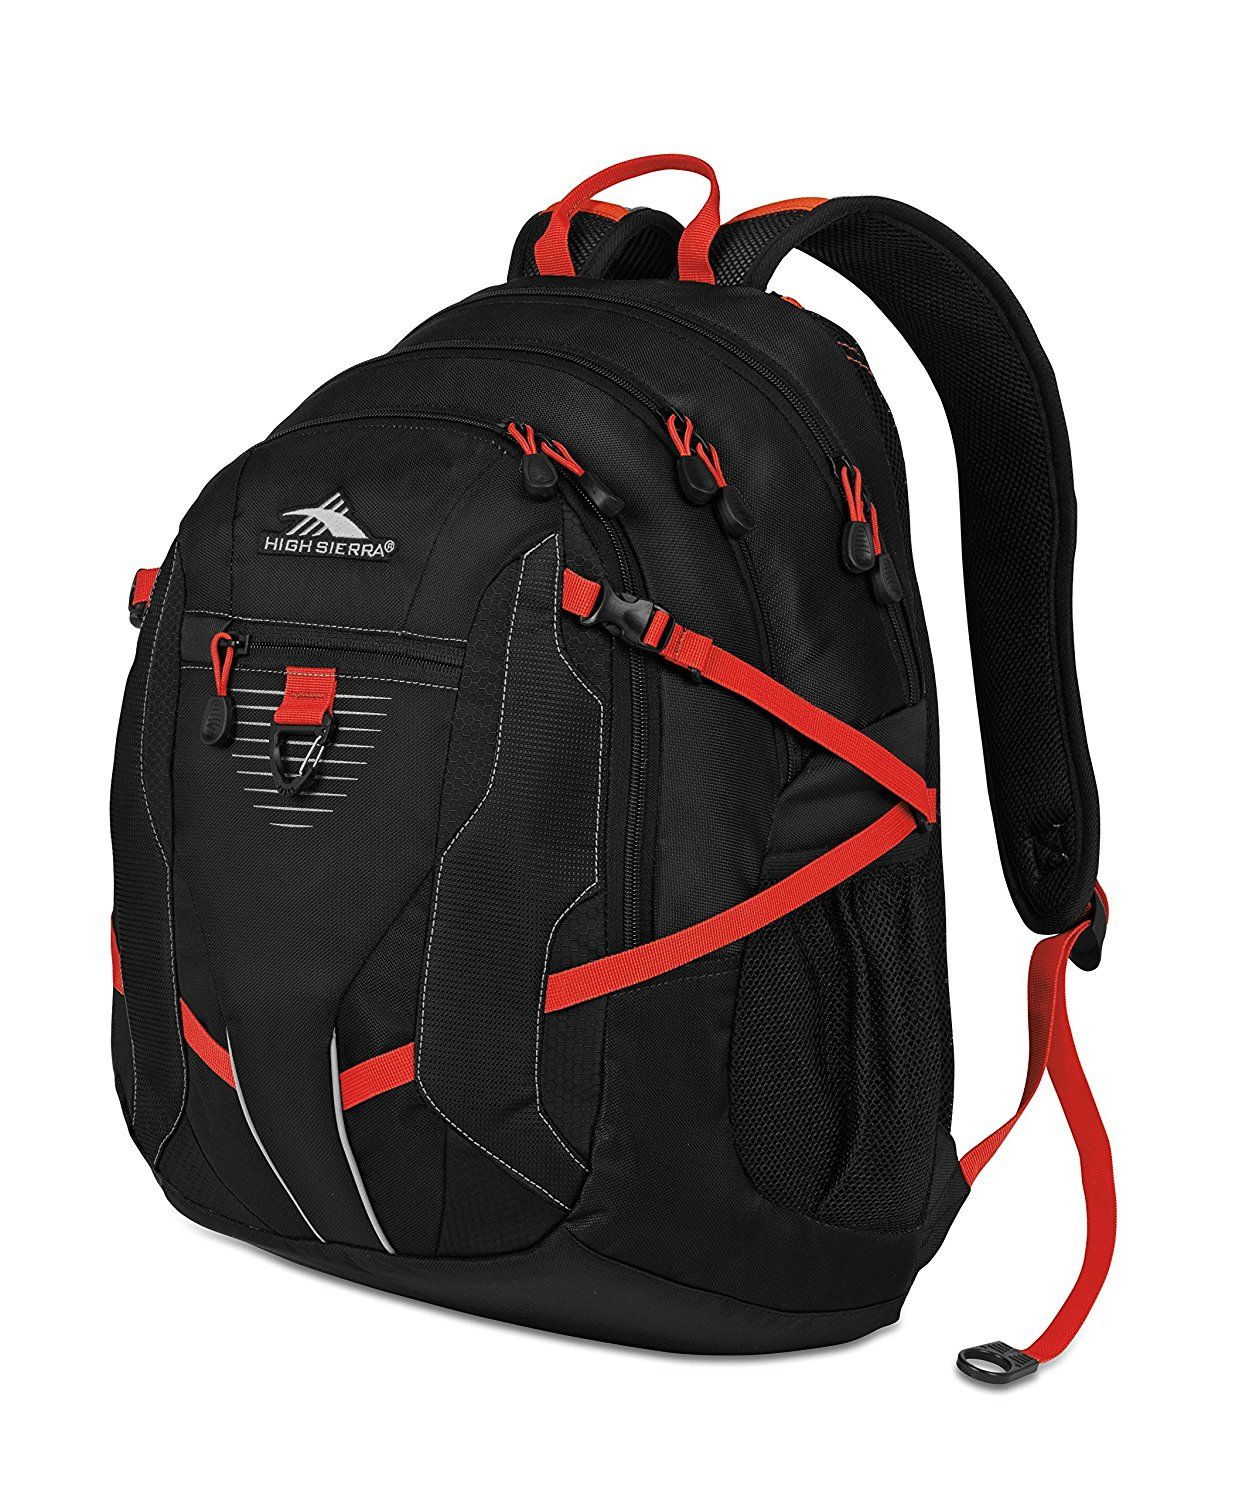 High Sierra Aggro Backpack >>> Startling review available here  : Backpacking bags